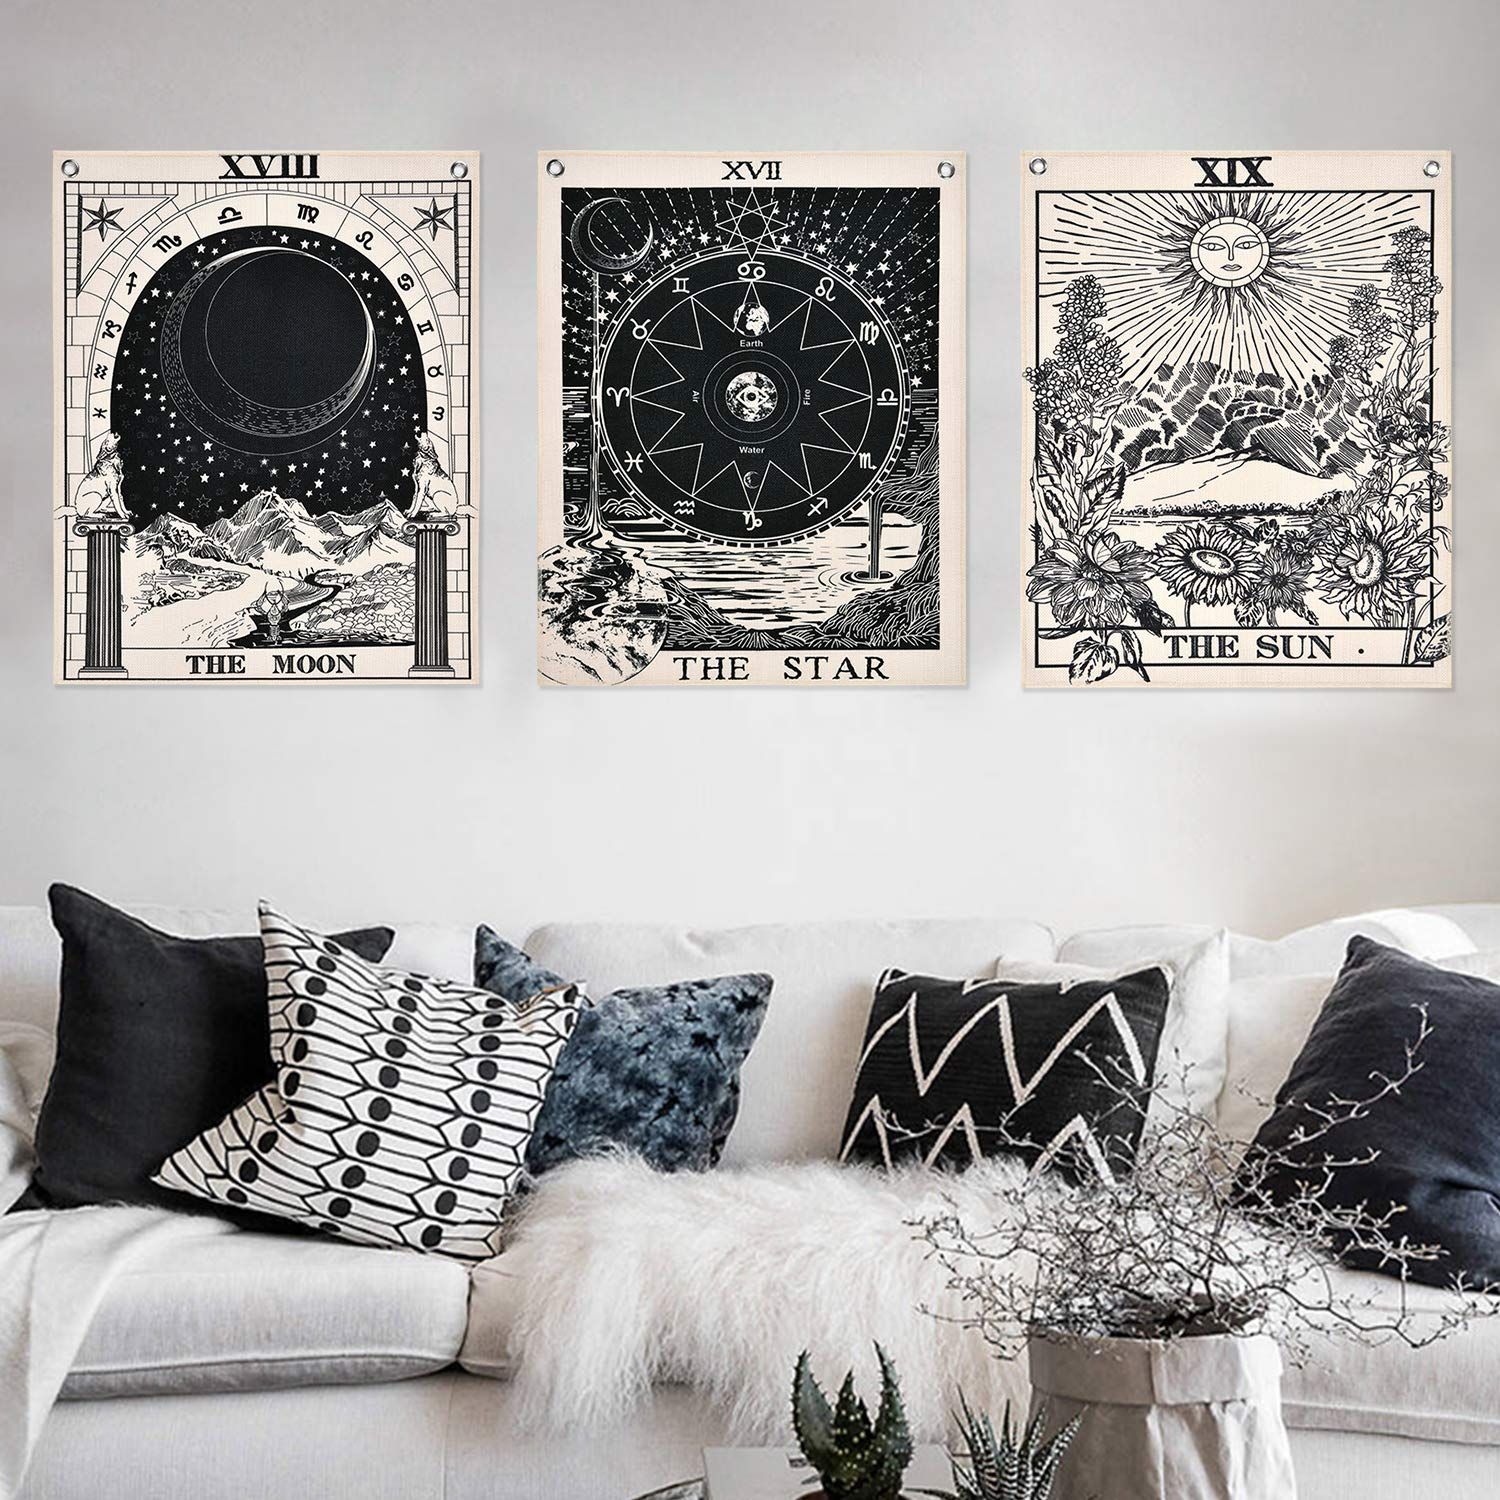 Star Sun and Moon Tarot Card Tapestries Bohemian Room Decoration #C Color,16 x 20 in 3Pcs Tarot Tapestry Wall Hanging Decor